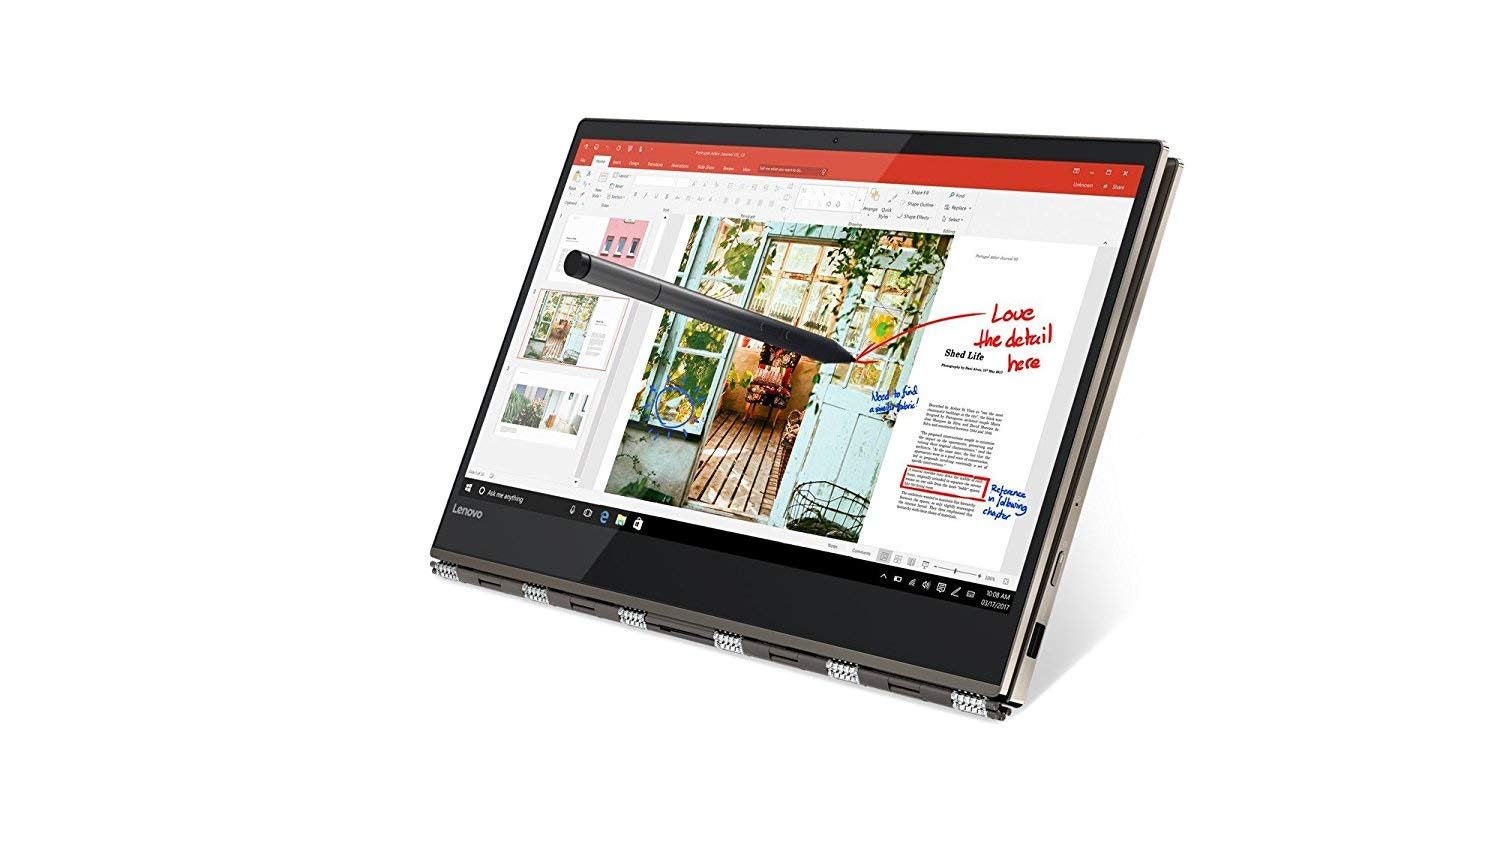 Lenovo Yoga 920 - 13ikb (80y80005fr) 2 en 1 - Convertible Laptop, Intel Core i5, 8 GB, 256 GB SSD, 13.9 Pulgadas, Platinum, AZERTY Keypad: Amazon.es: ...